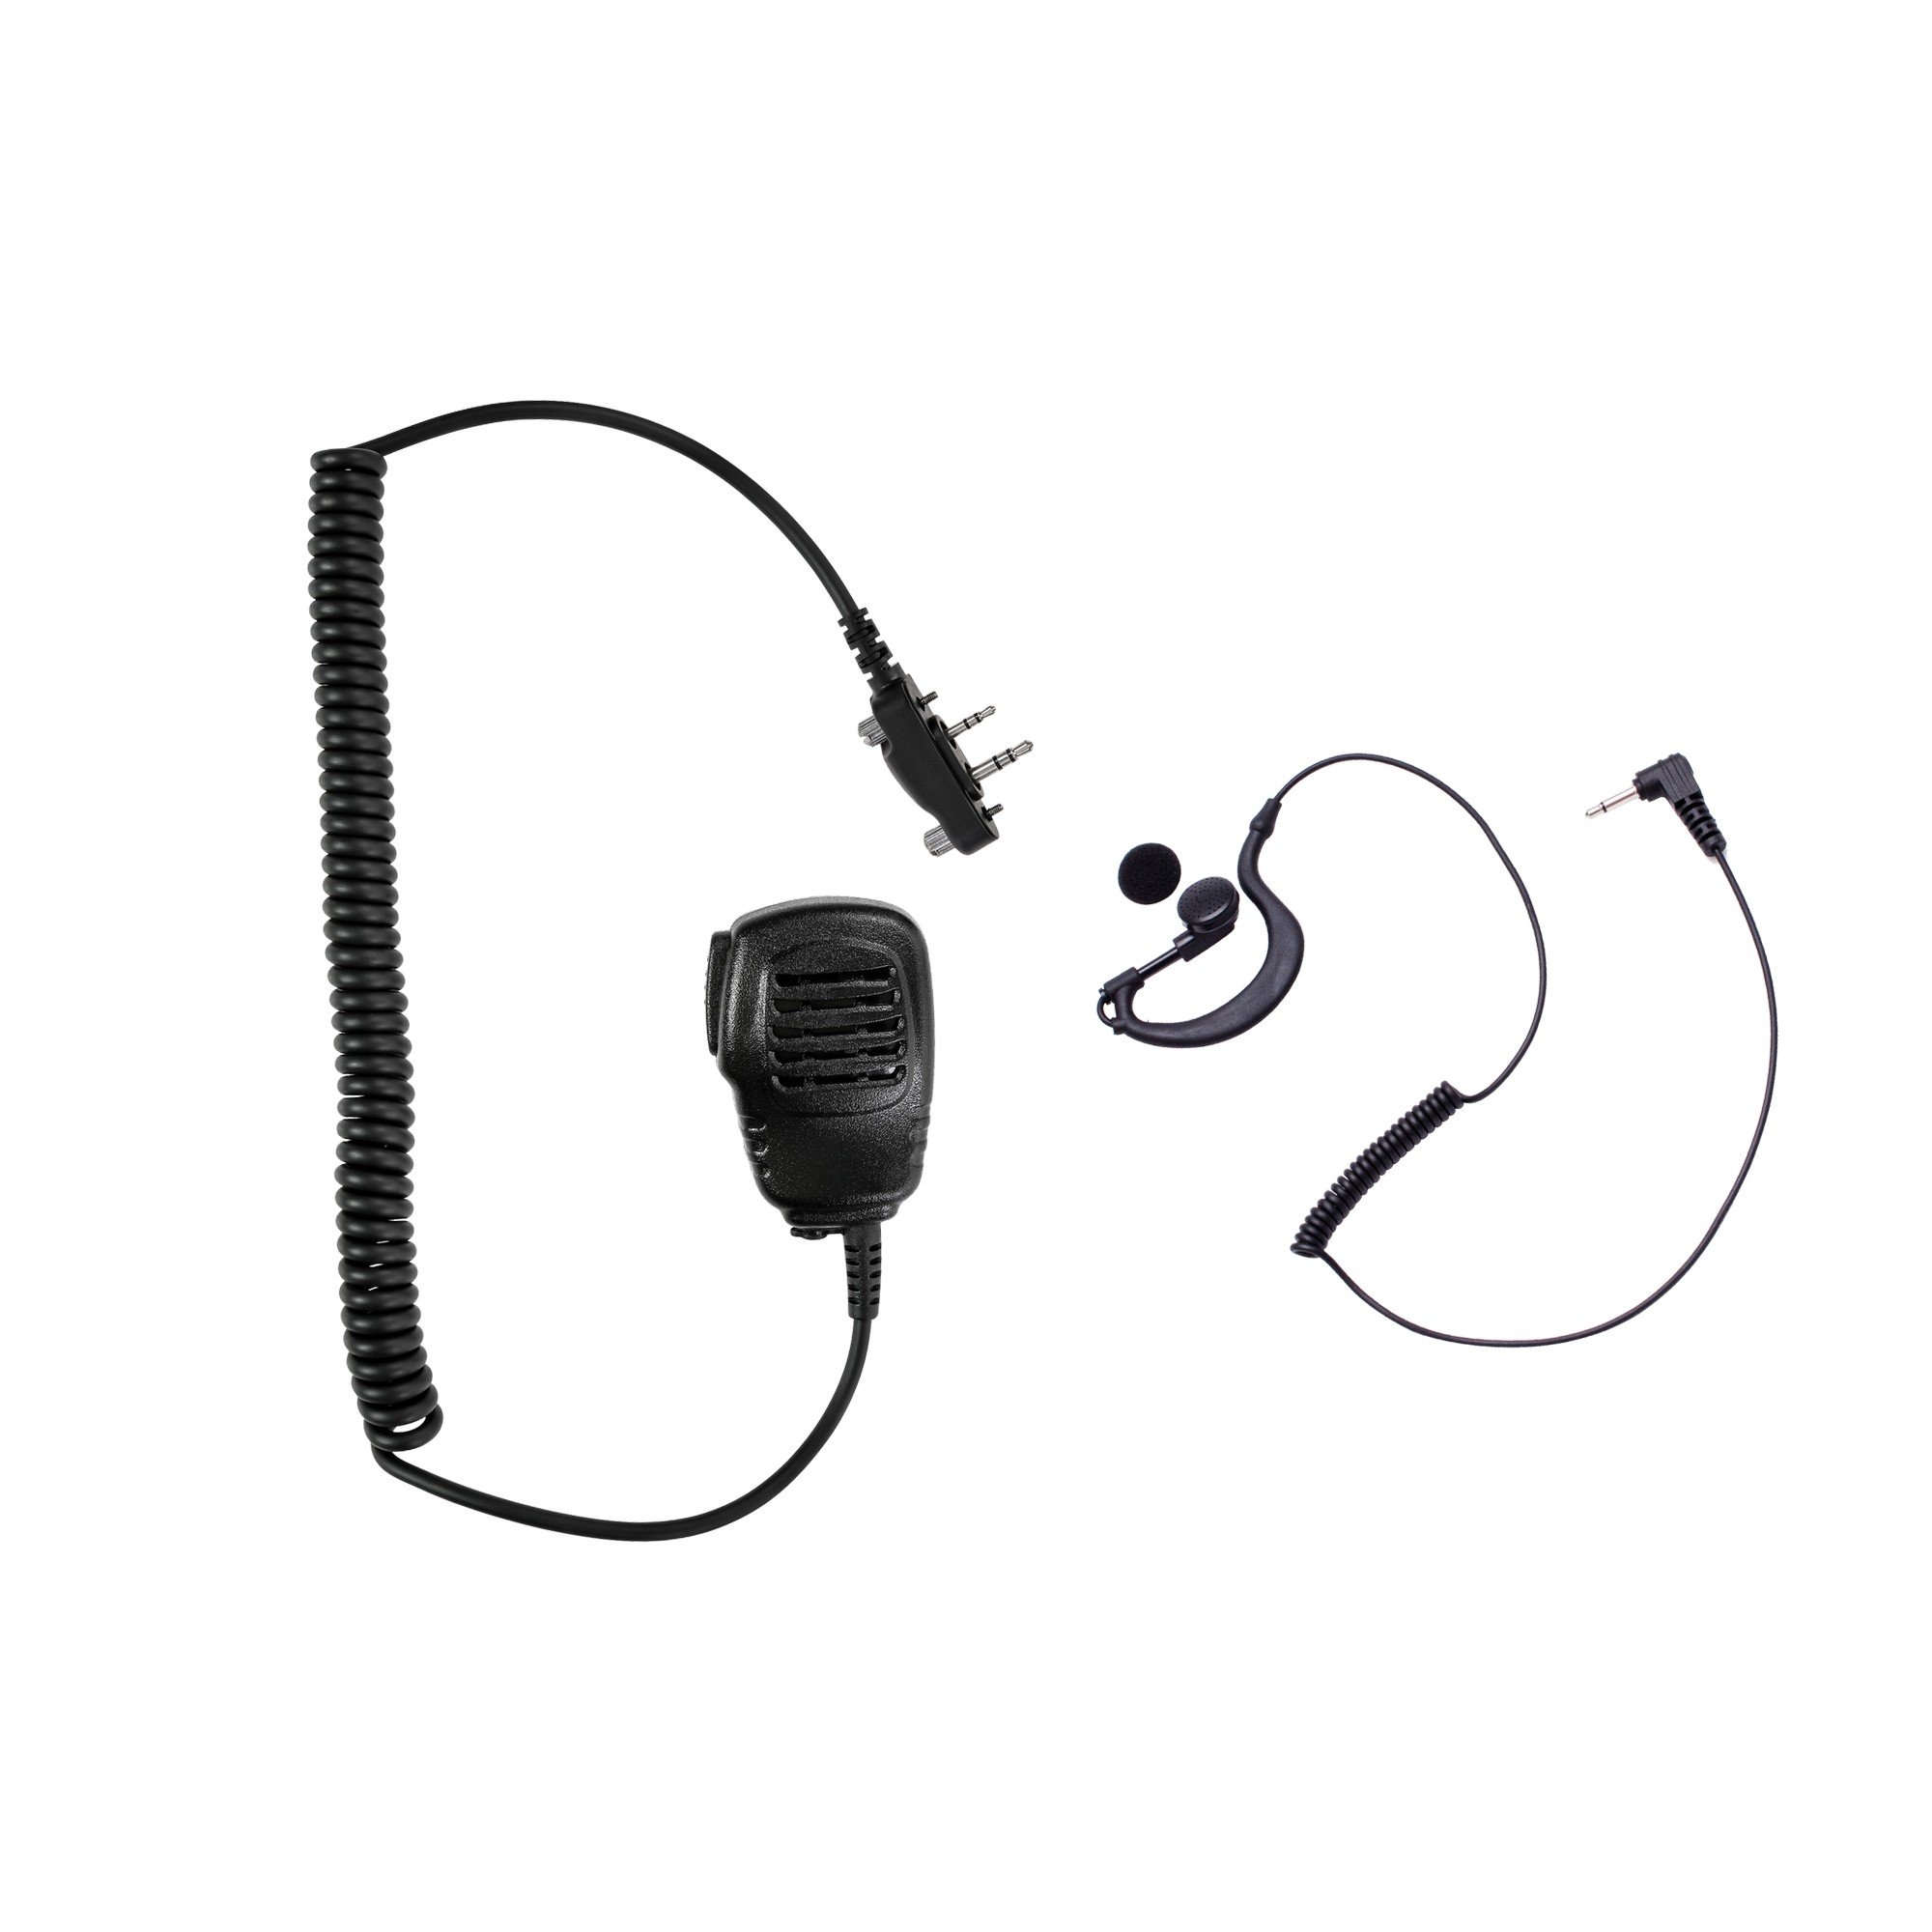 Maxtop APM100ARP03-I2 Light Duty Shoulder Speaker Microphone + G-Shape Listen Only Earpiece for ICOM